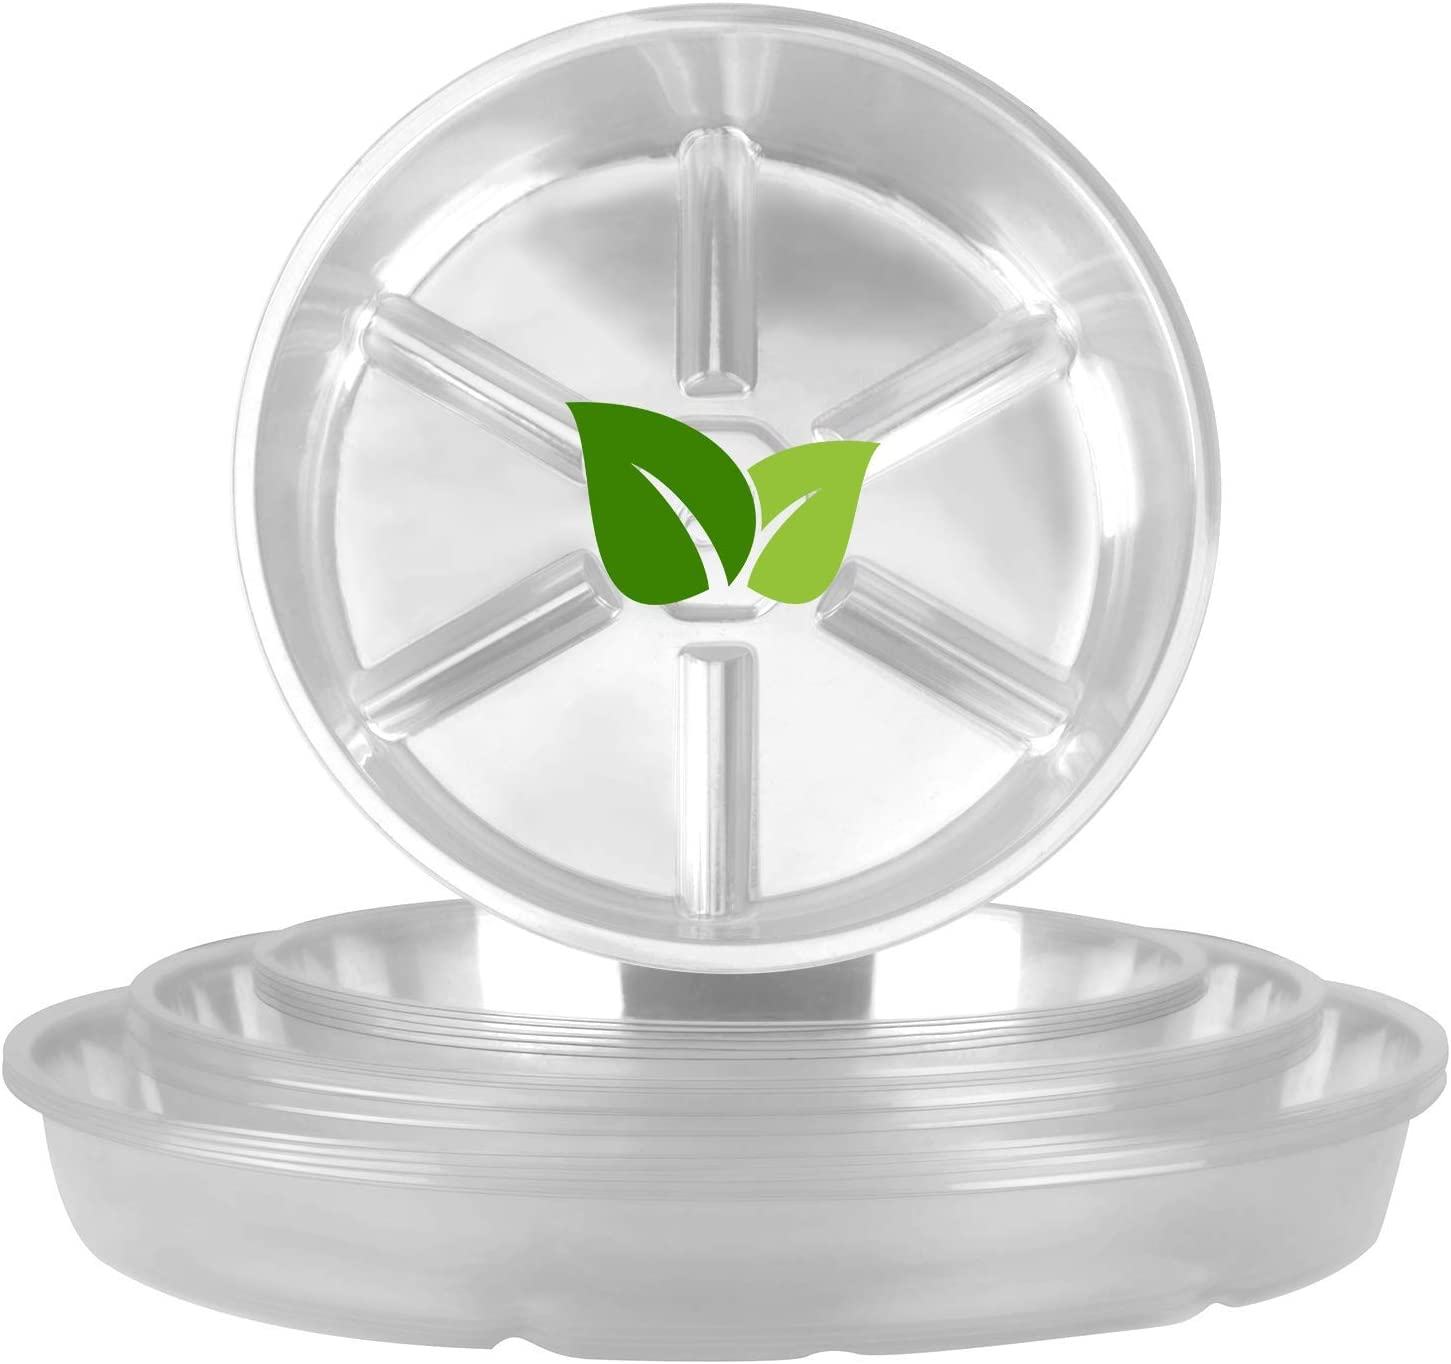 MICGEEK Plant Saucer 20 Pack (6/8/10/12inches) Plant Tray Clear Plastic Flower Plant Pot Saucers Drip Trays for Indoor & Outdoor Flower Pots